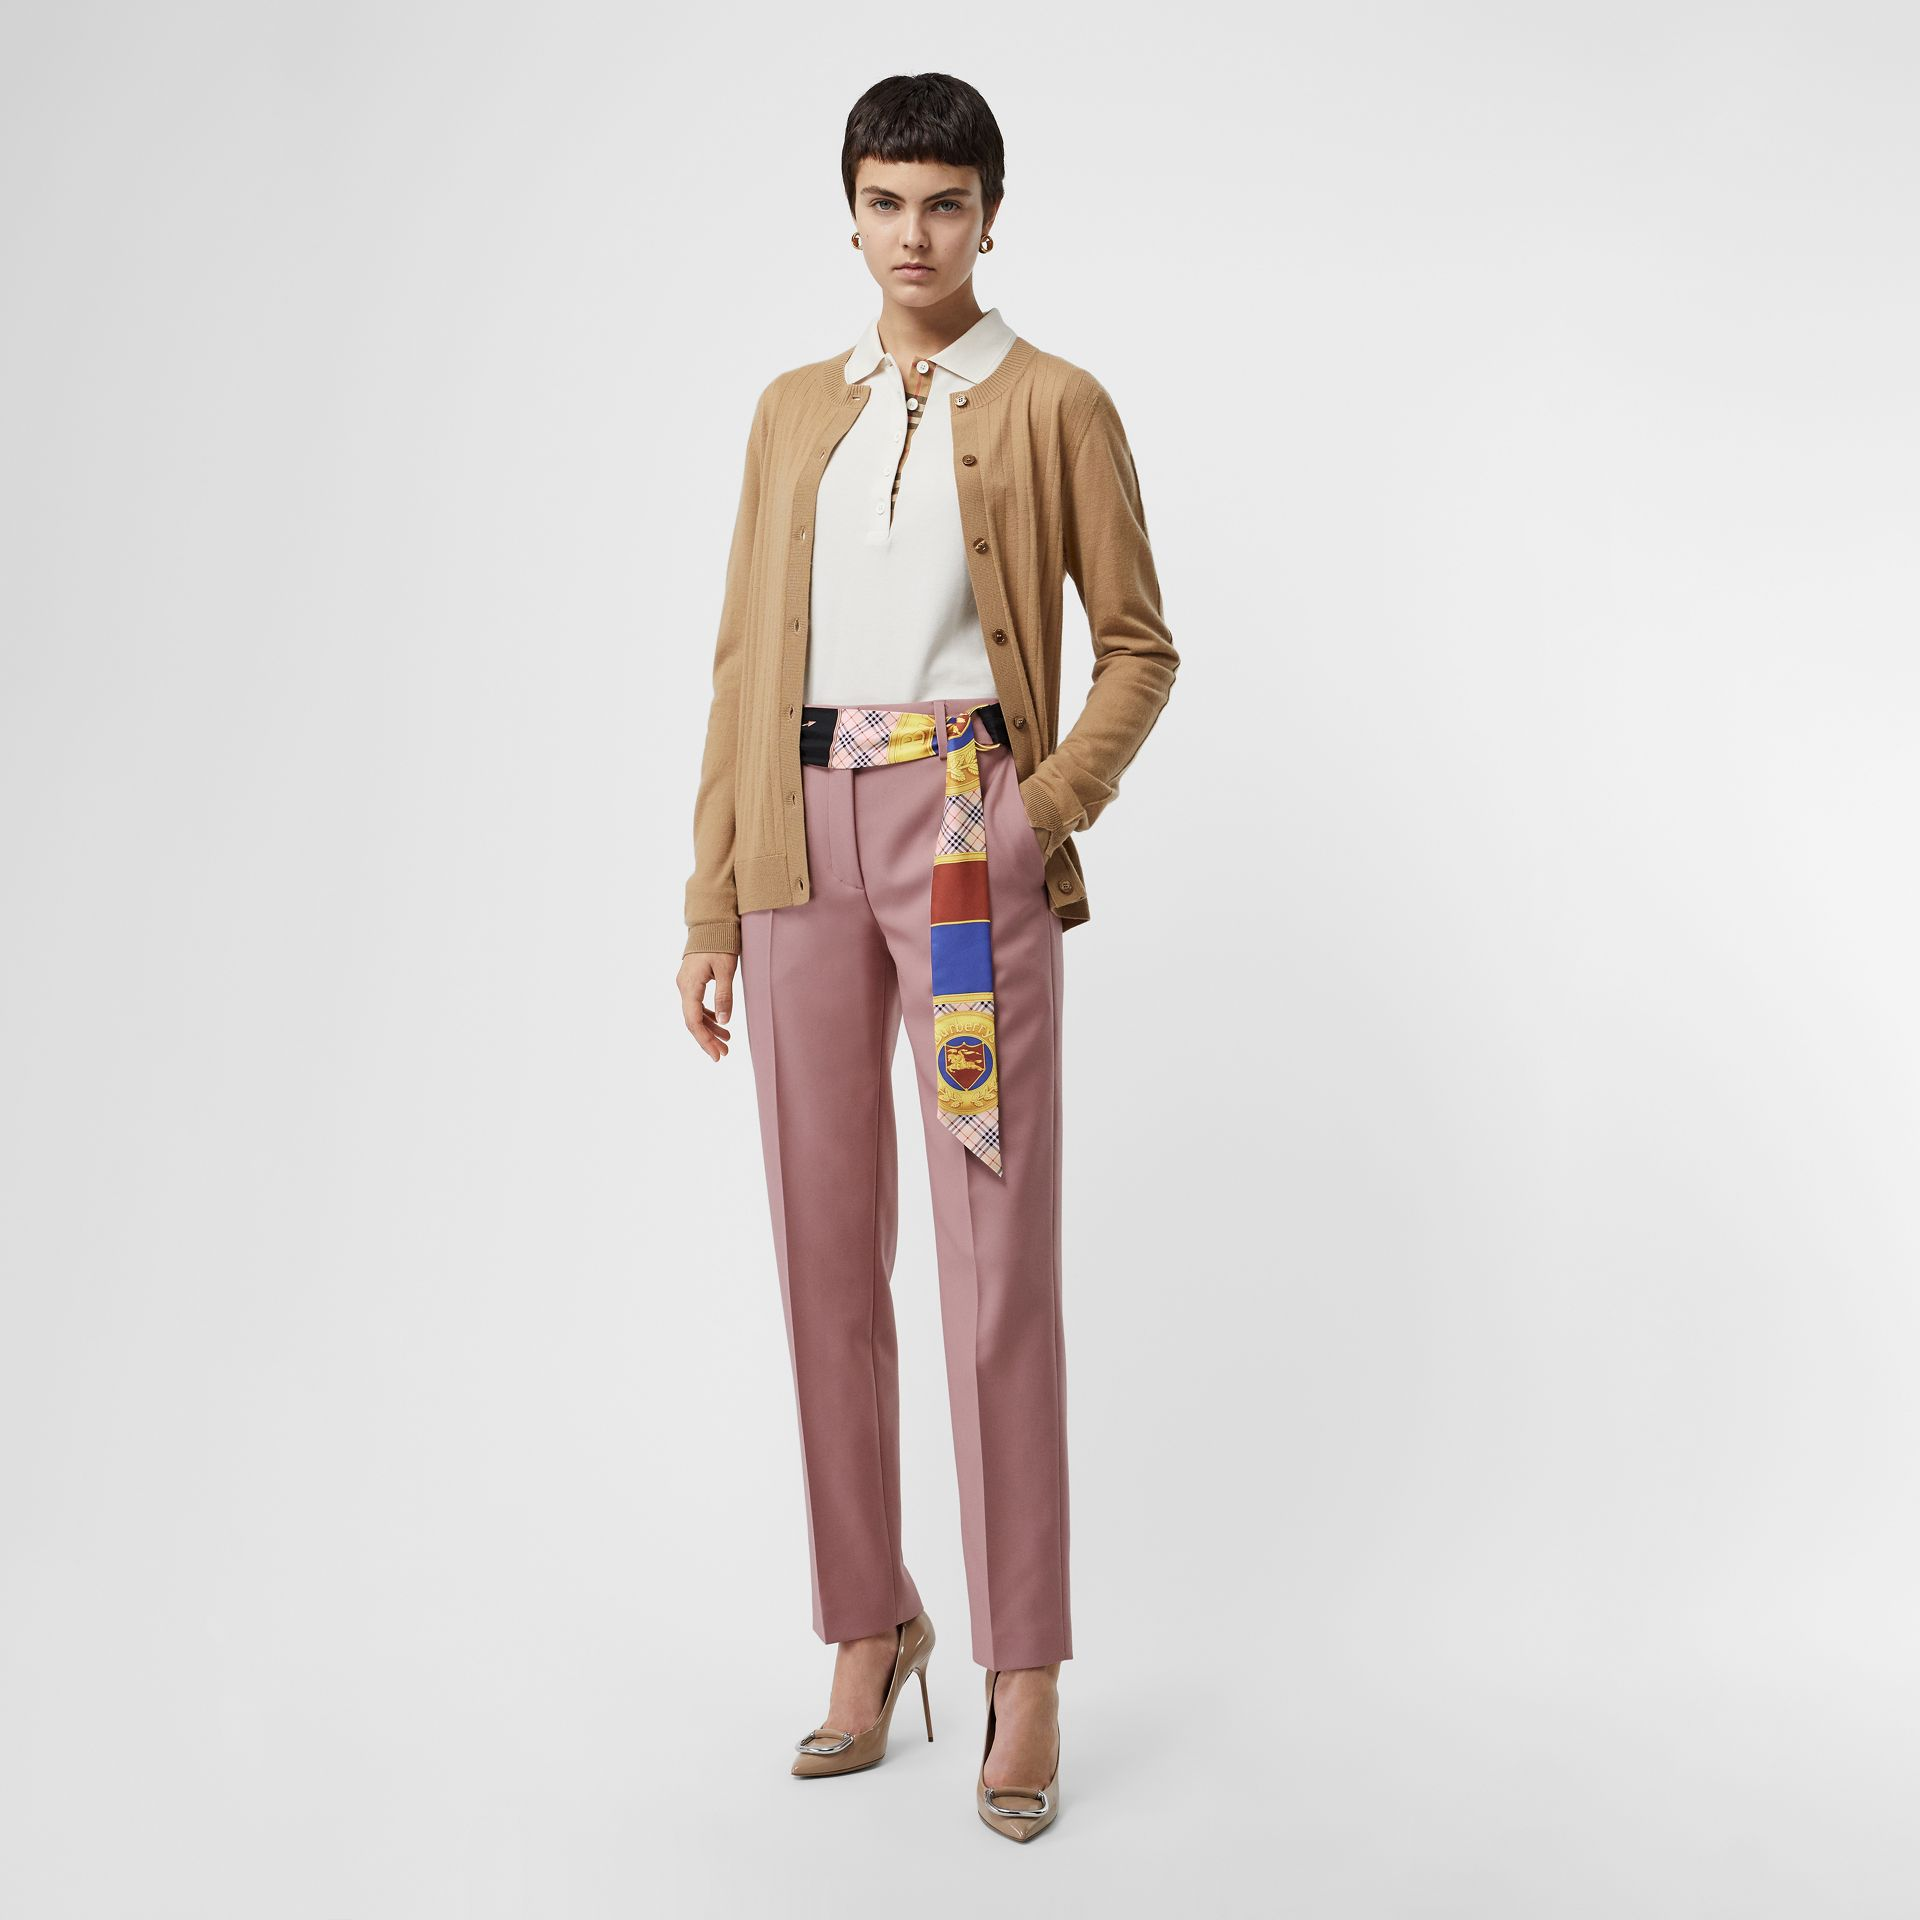 D-ring Detail Archive Print Silk Skinny Scarf in Multicolour - Women | Burberry - gallery image 5